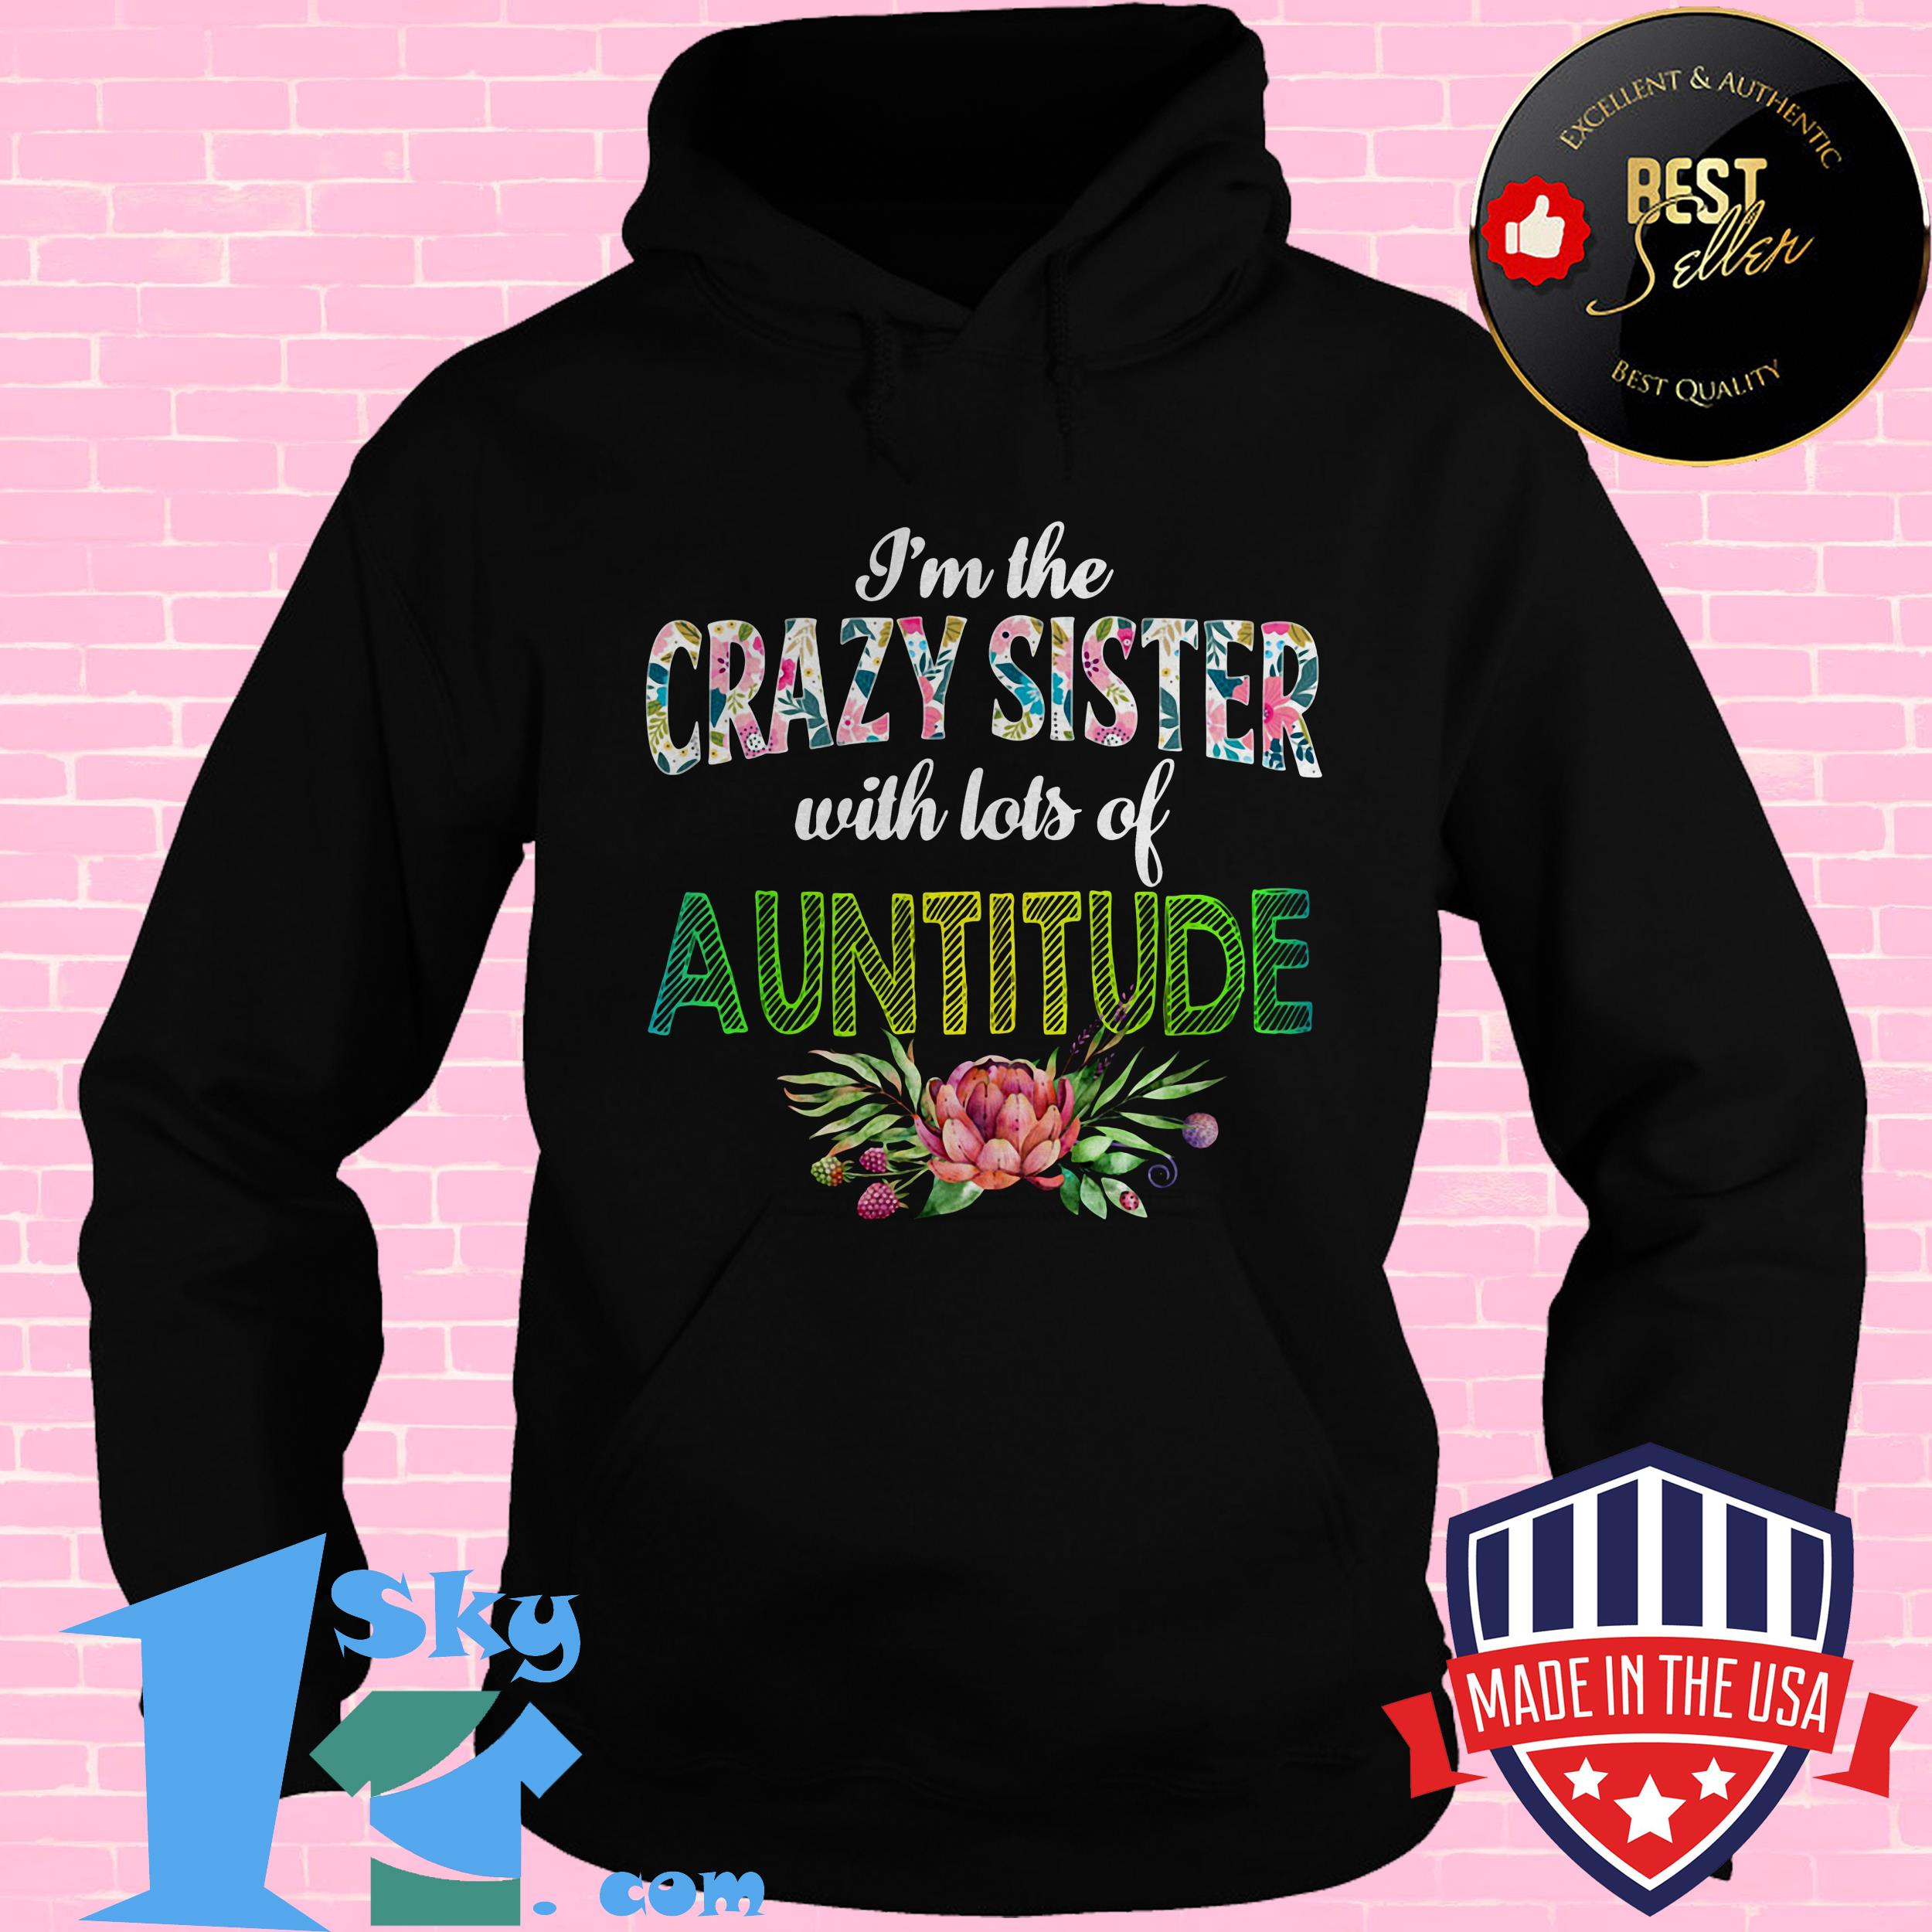 im the crazy sister with lots of auntitude floral hoodie - I'm The Crazy Sister with Lots of Auntitude Floral Shirt